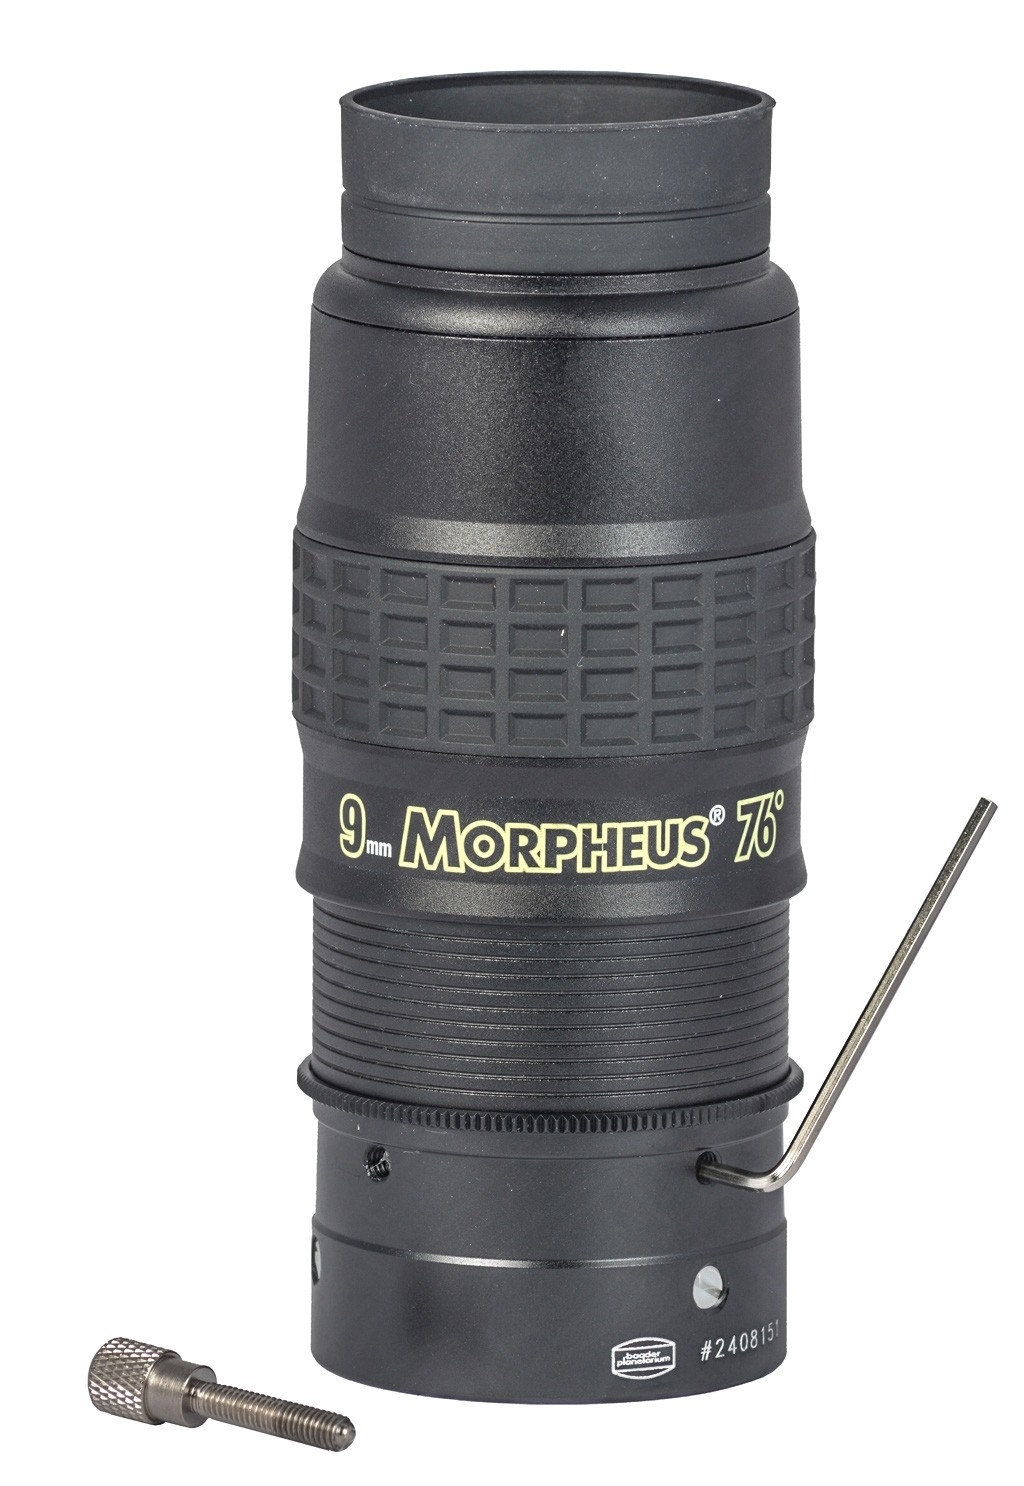 Application image: Baader Pushfix mounted on 9 mm Morpheus® 76° widefield eyepiece